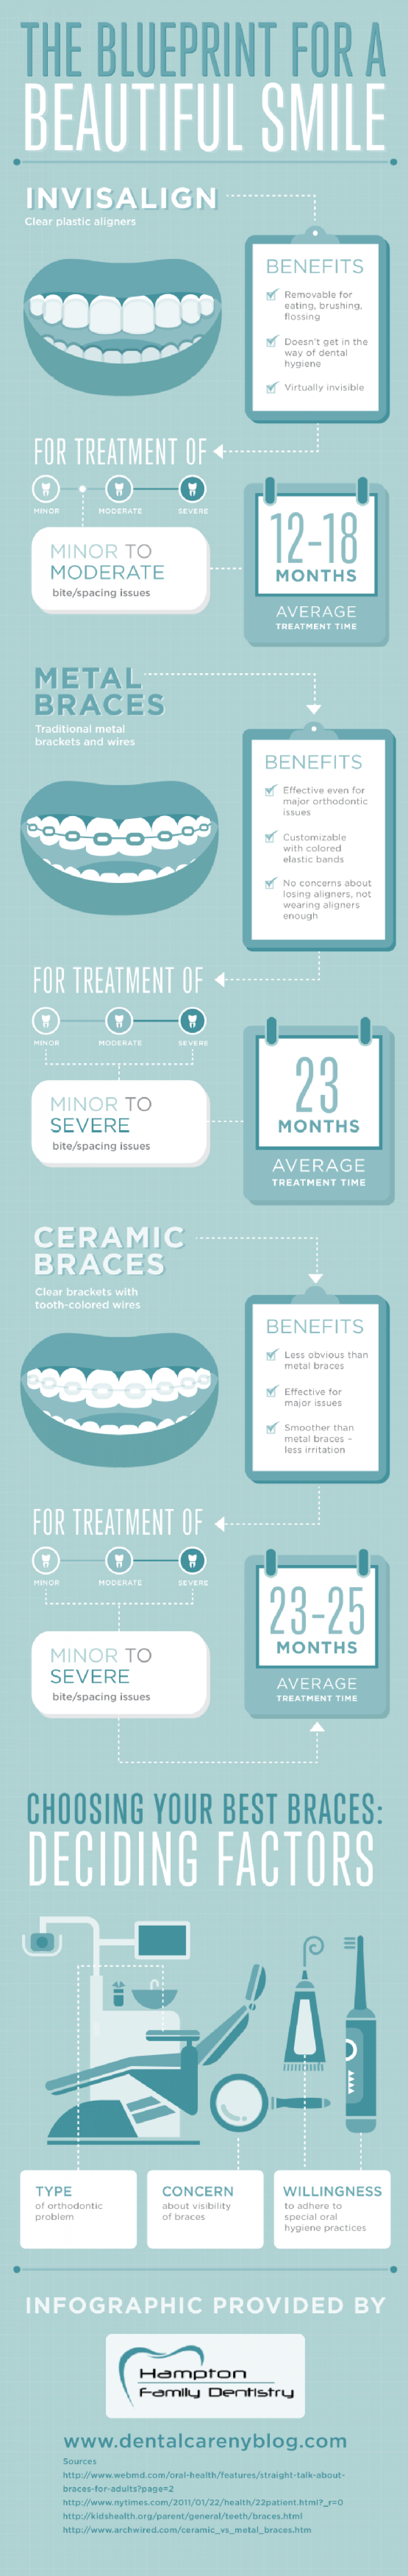 The blueprint for a beautiful smile Infographic